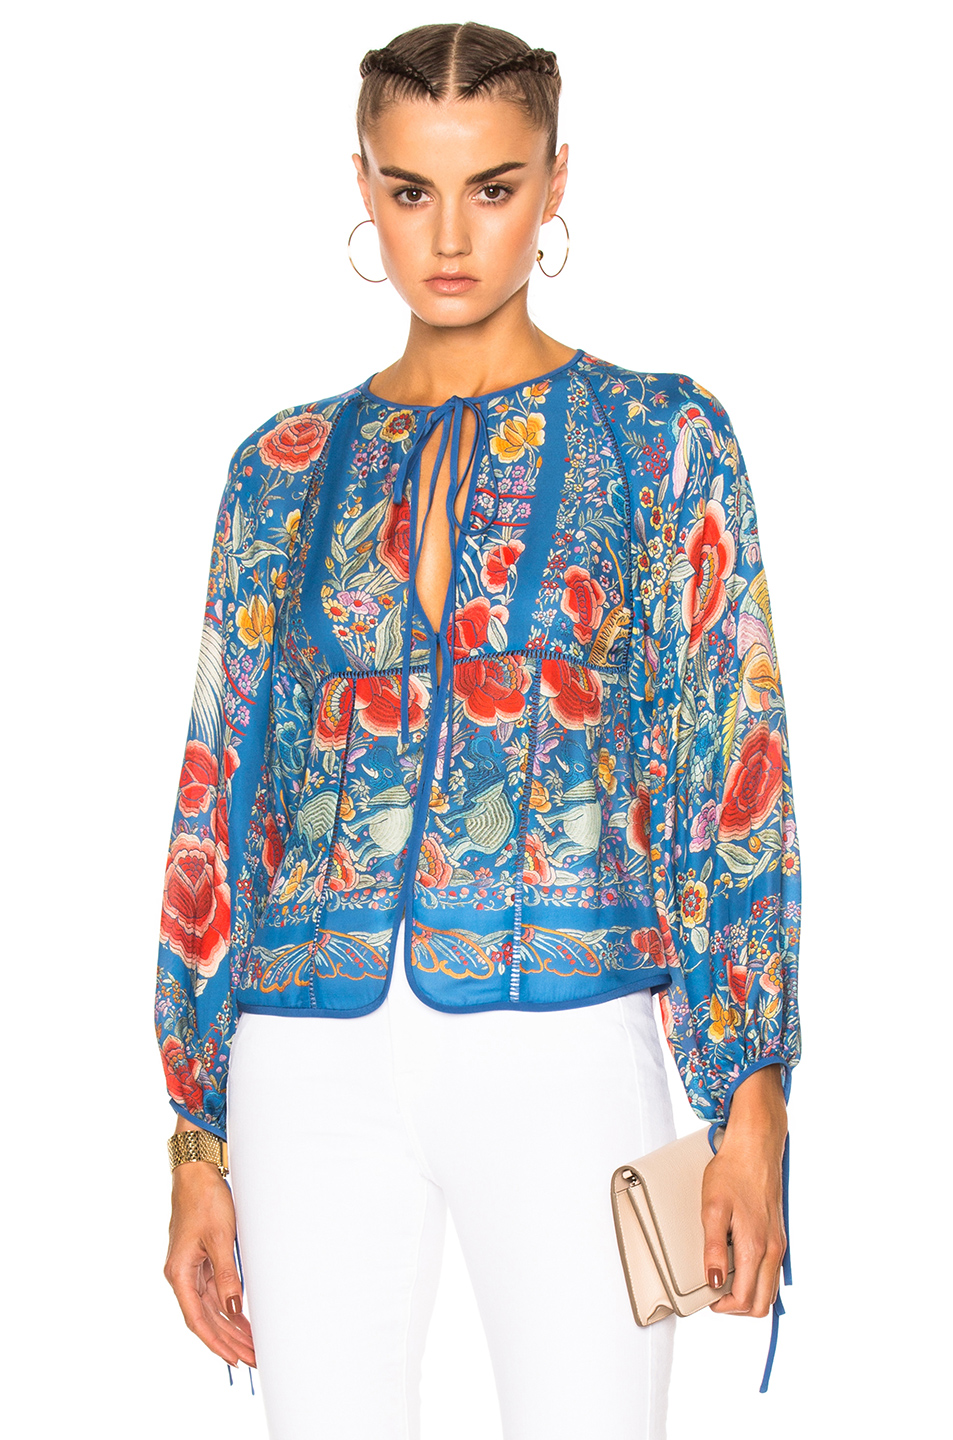 Roberto Cavalli Printed Woven Blouse in Blue,Floral